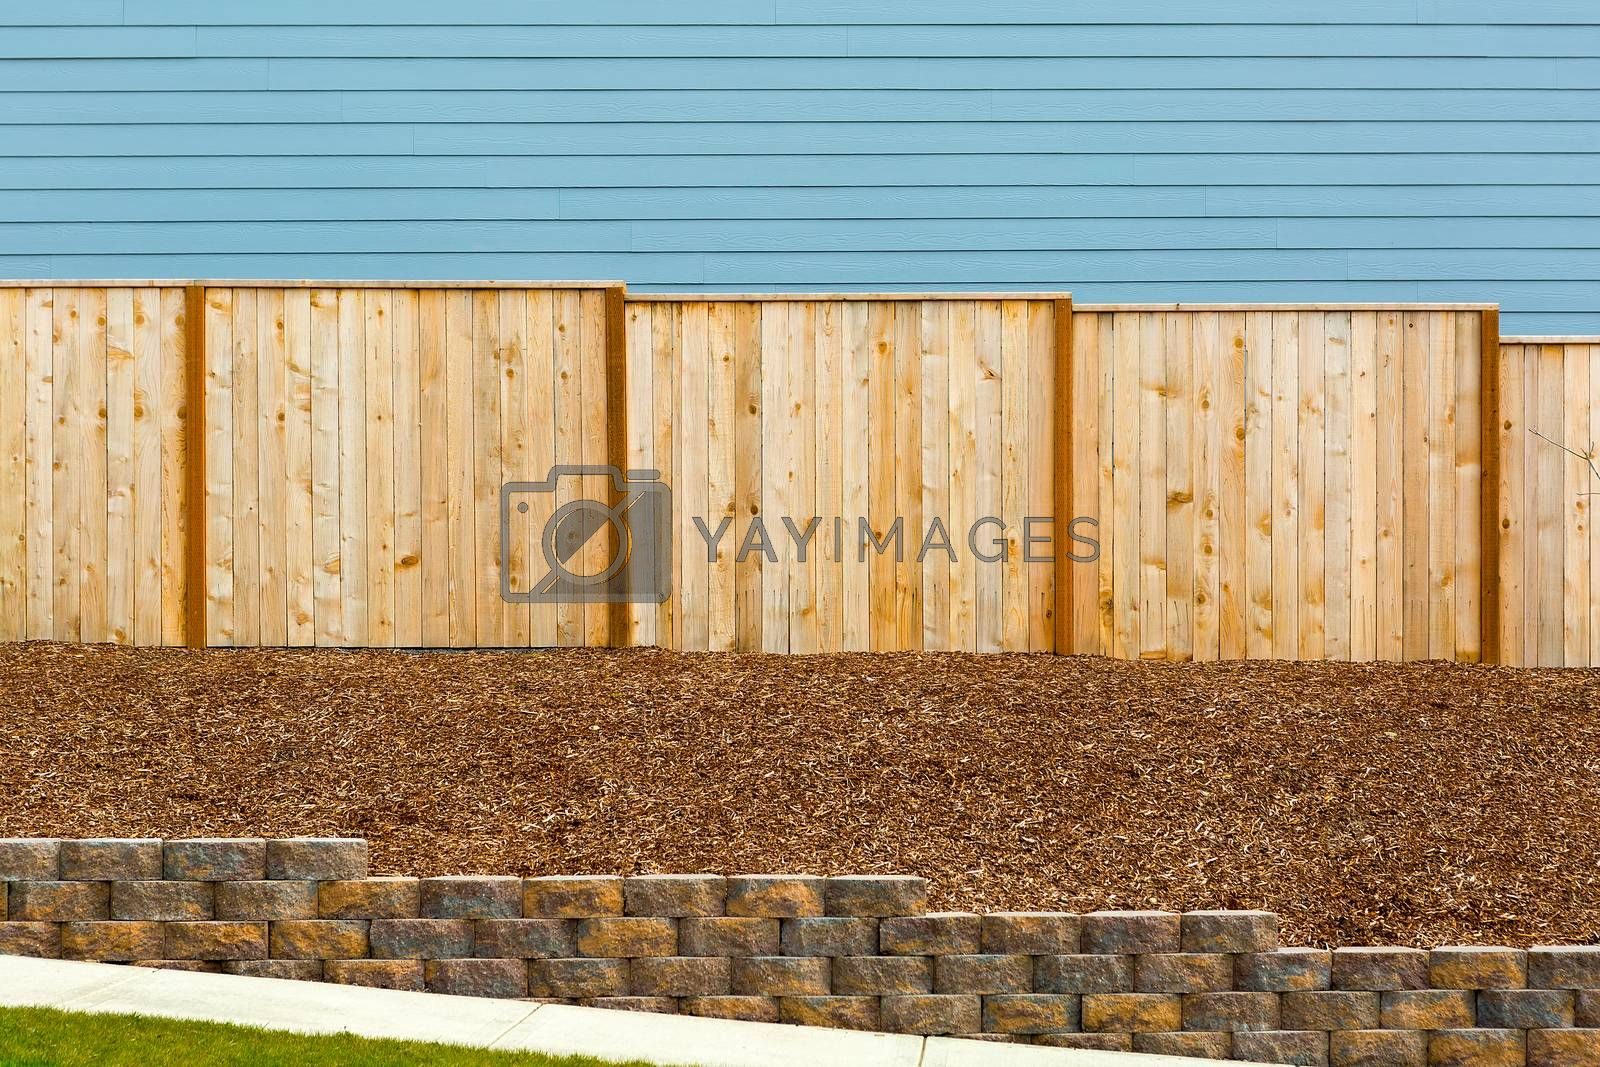 New Garden Wood Fence with house siding barkdust mulch concrete retaining wall along exterior sidewalk